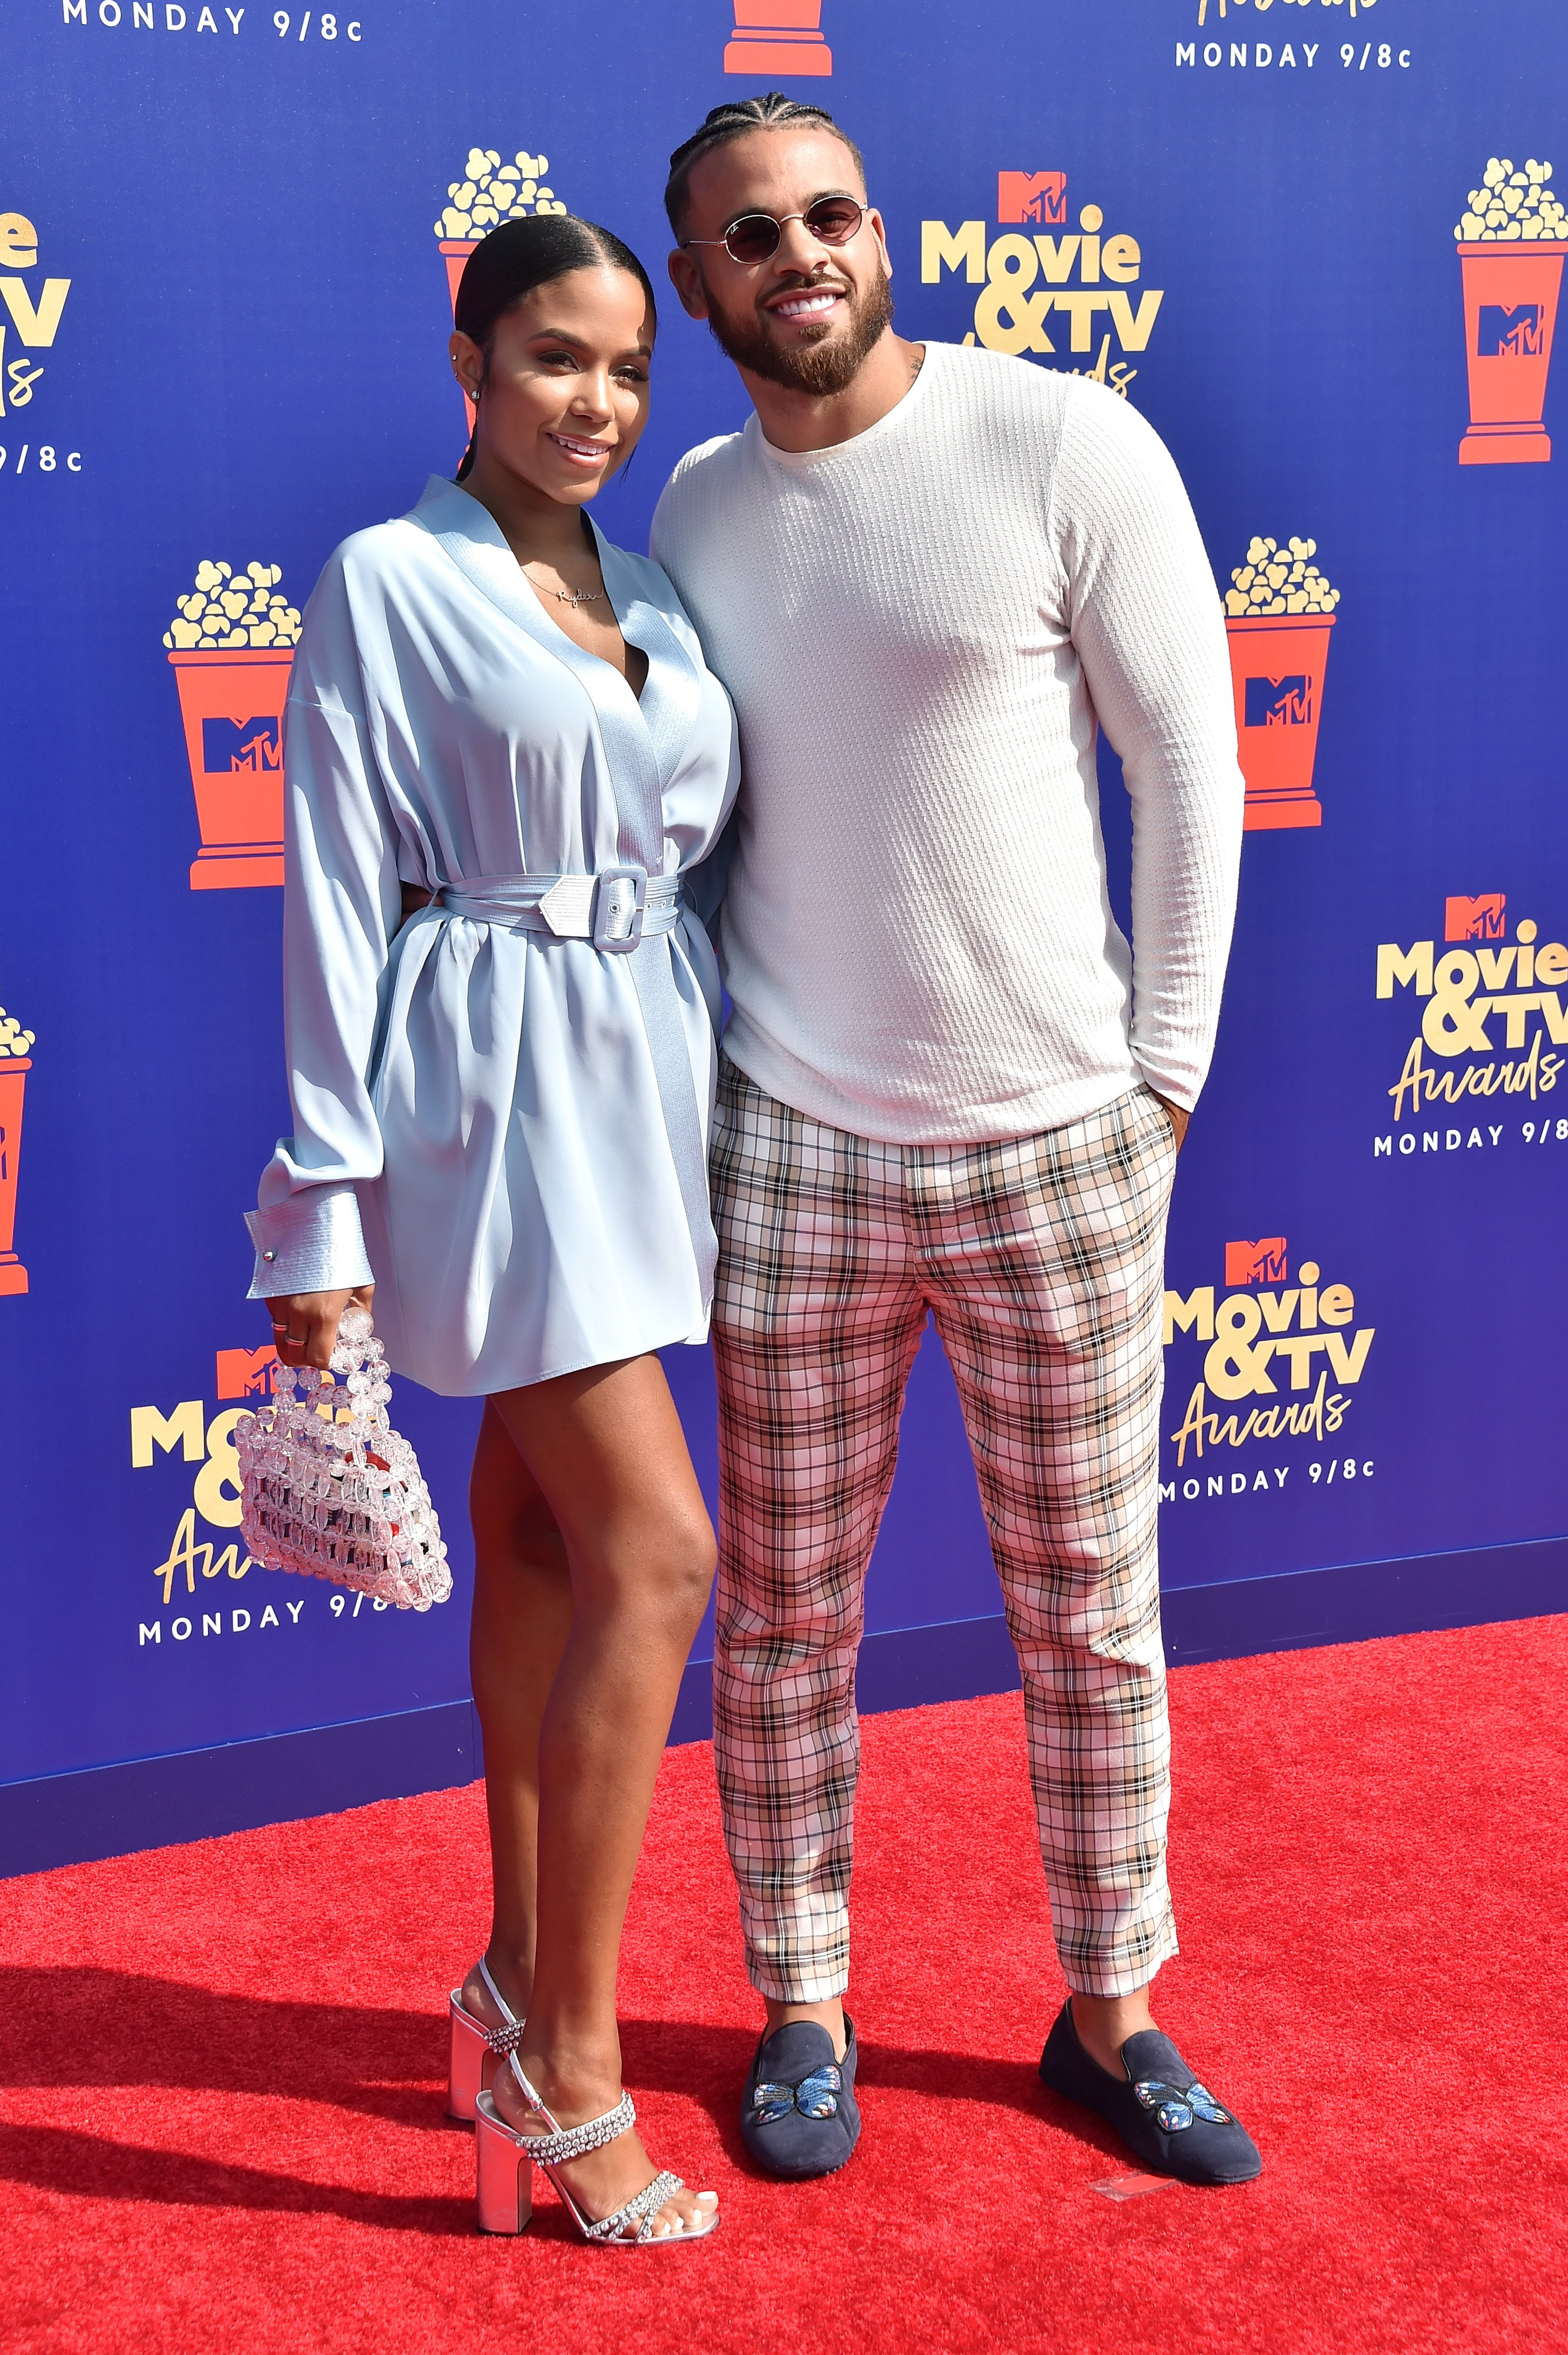 Cheyenne Floyd and Cory Wharton at the 2019 MTV Movie and TV Awards on June 15, 2019 | Photo: Getty Images